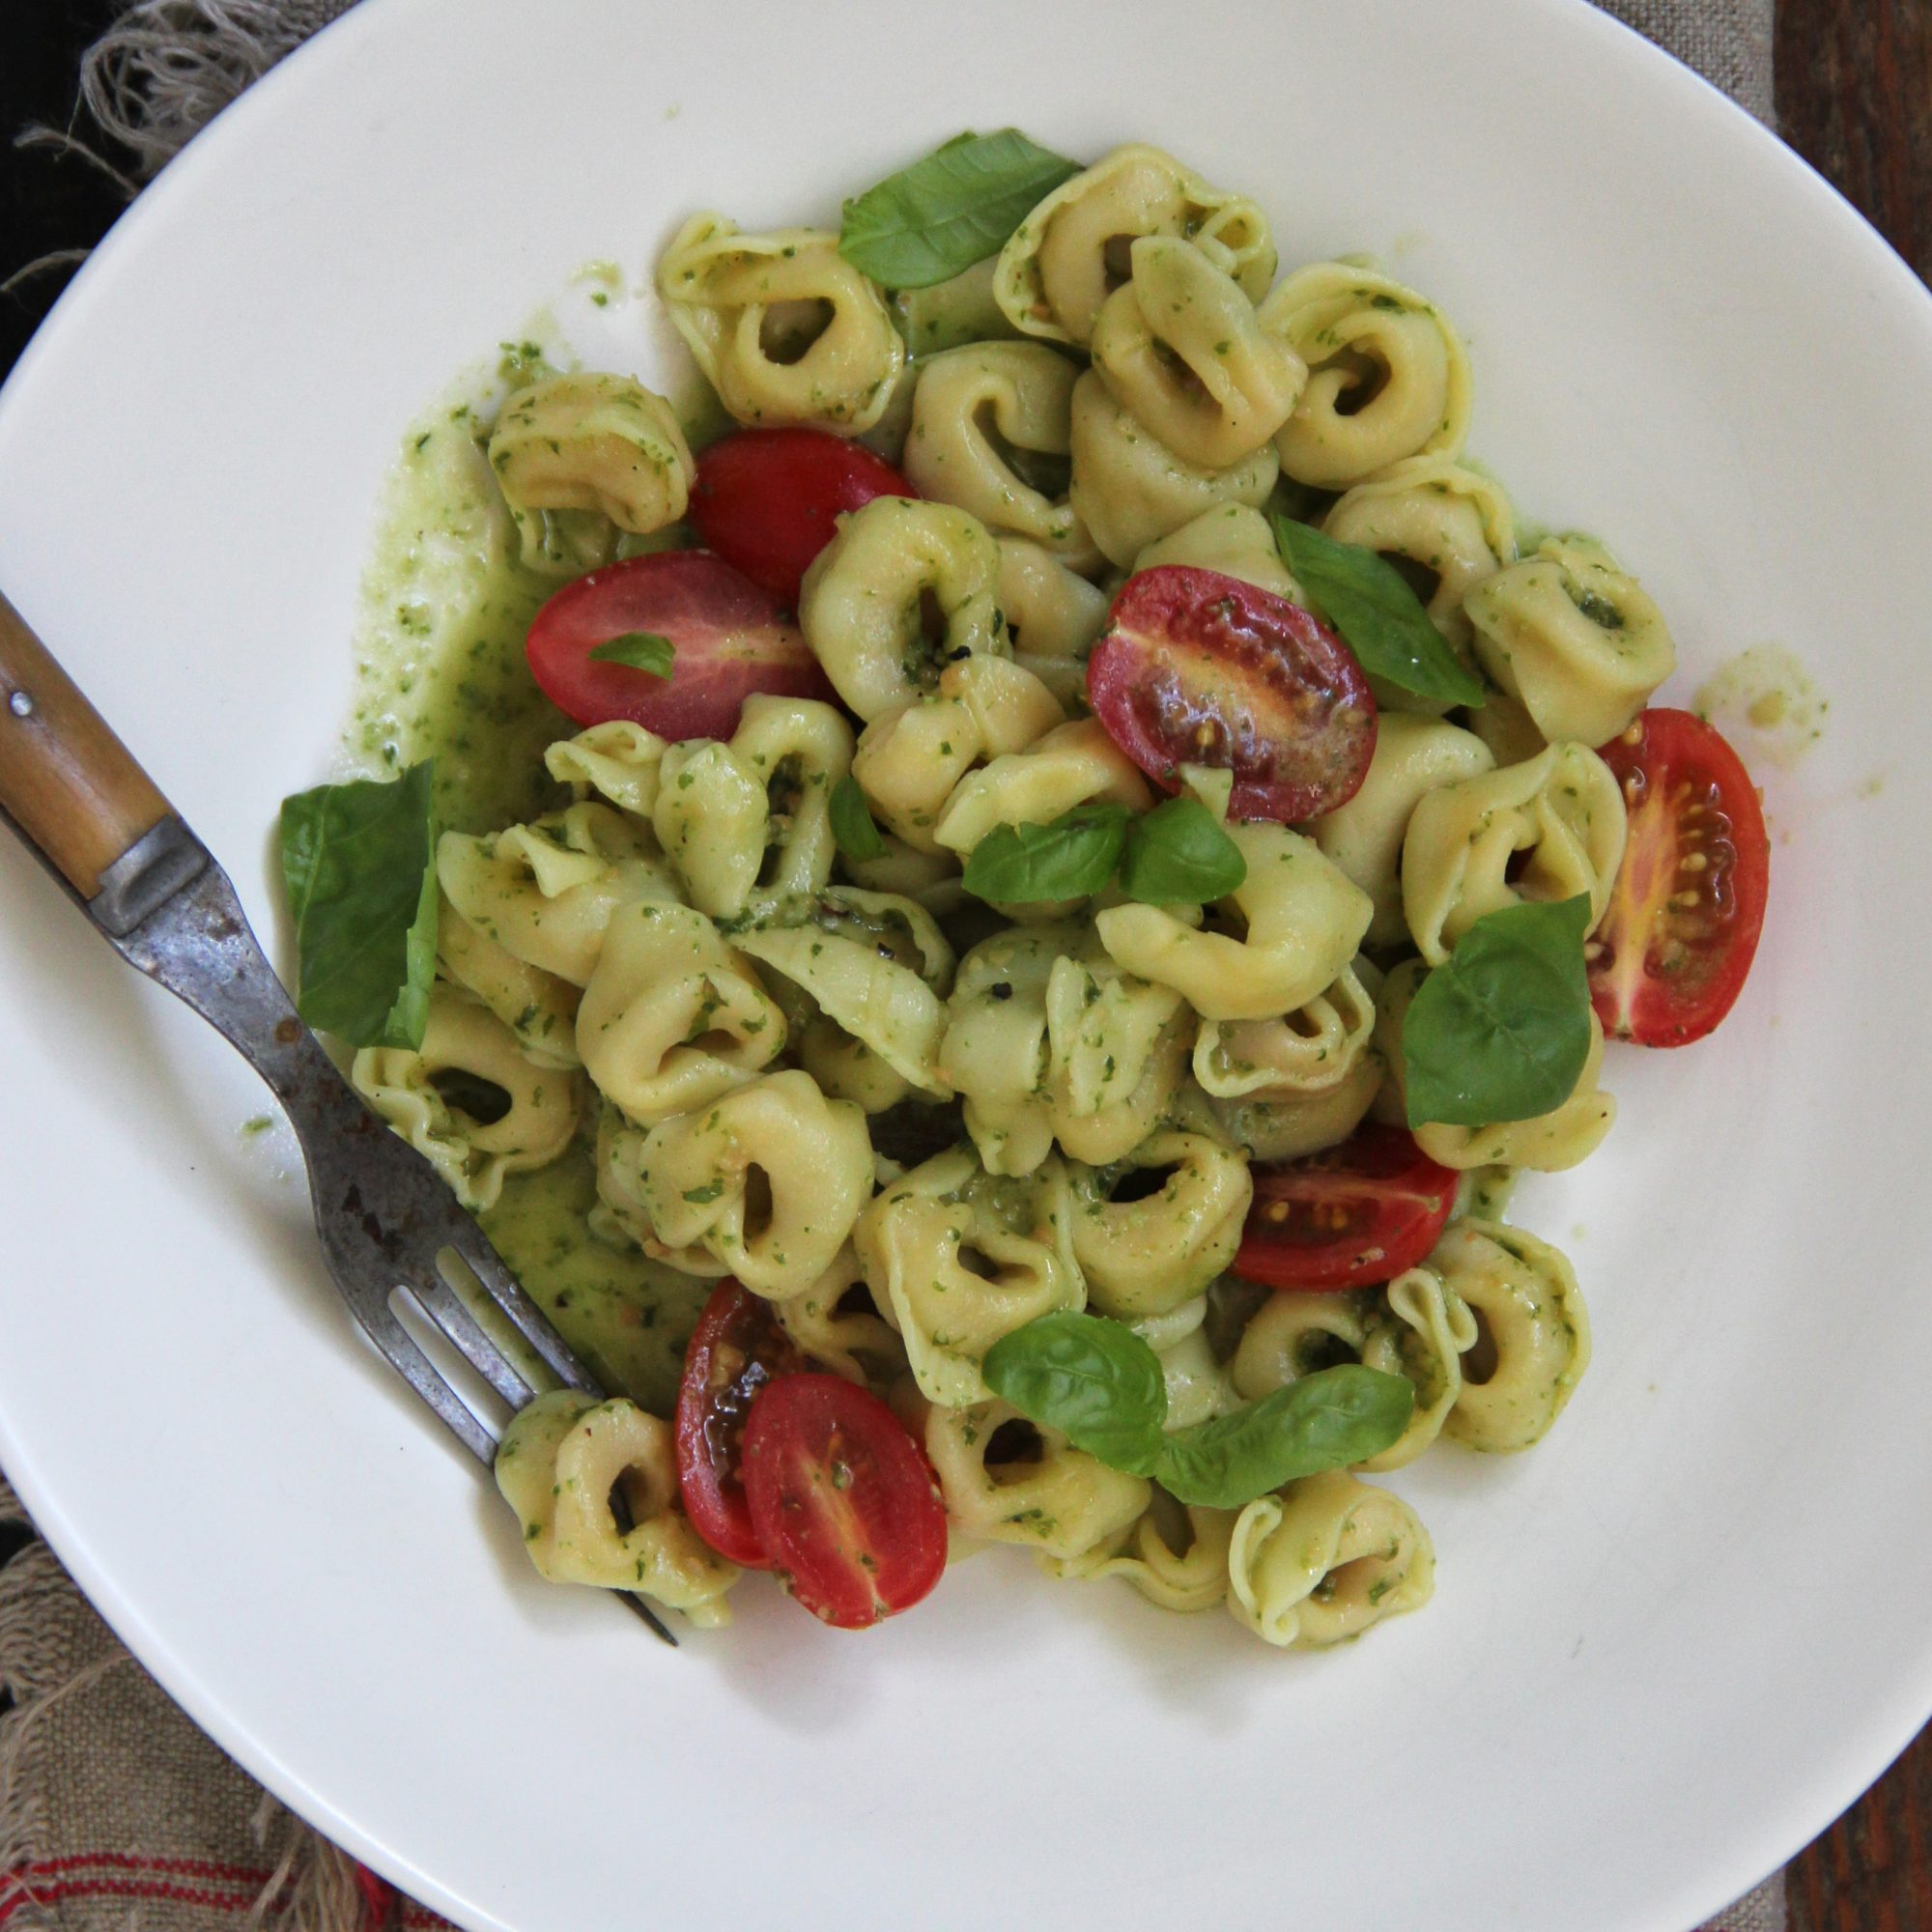 Tortellini with Pesto and Cherry Tomatoes